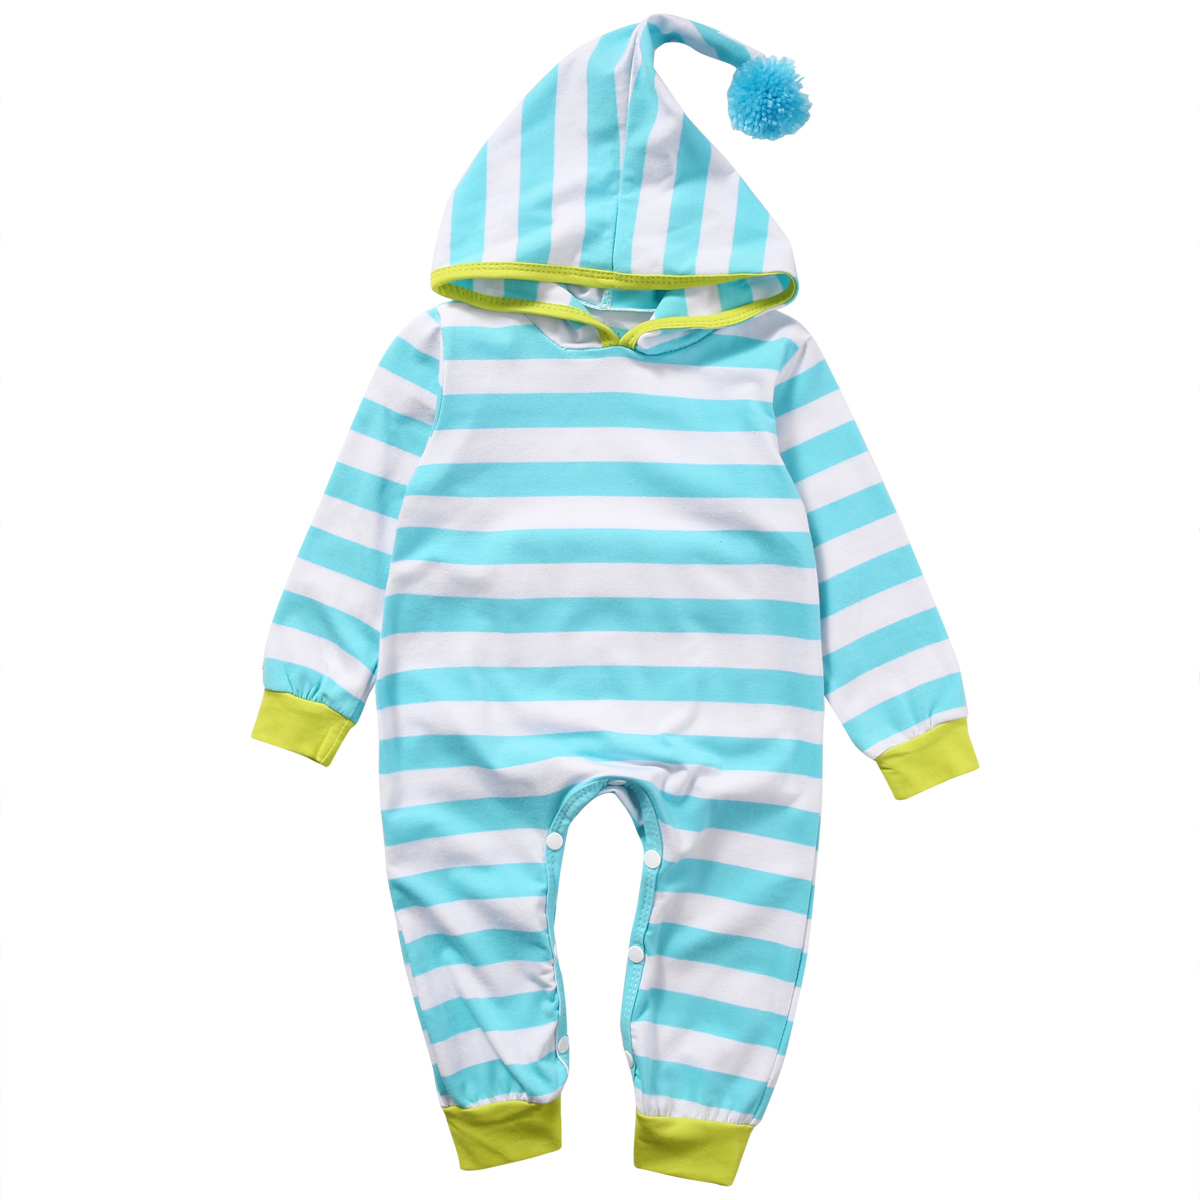 Fashion Newborn Infant Baby Boys Girls Long Sleeve Striped Hooded Romper Jumpsuit Outfits Hooded Cotton Clothes cotton infant romper newborn overall kids striped fashion clothes autumn baby rompers boys girls long sleeves jumpsuit